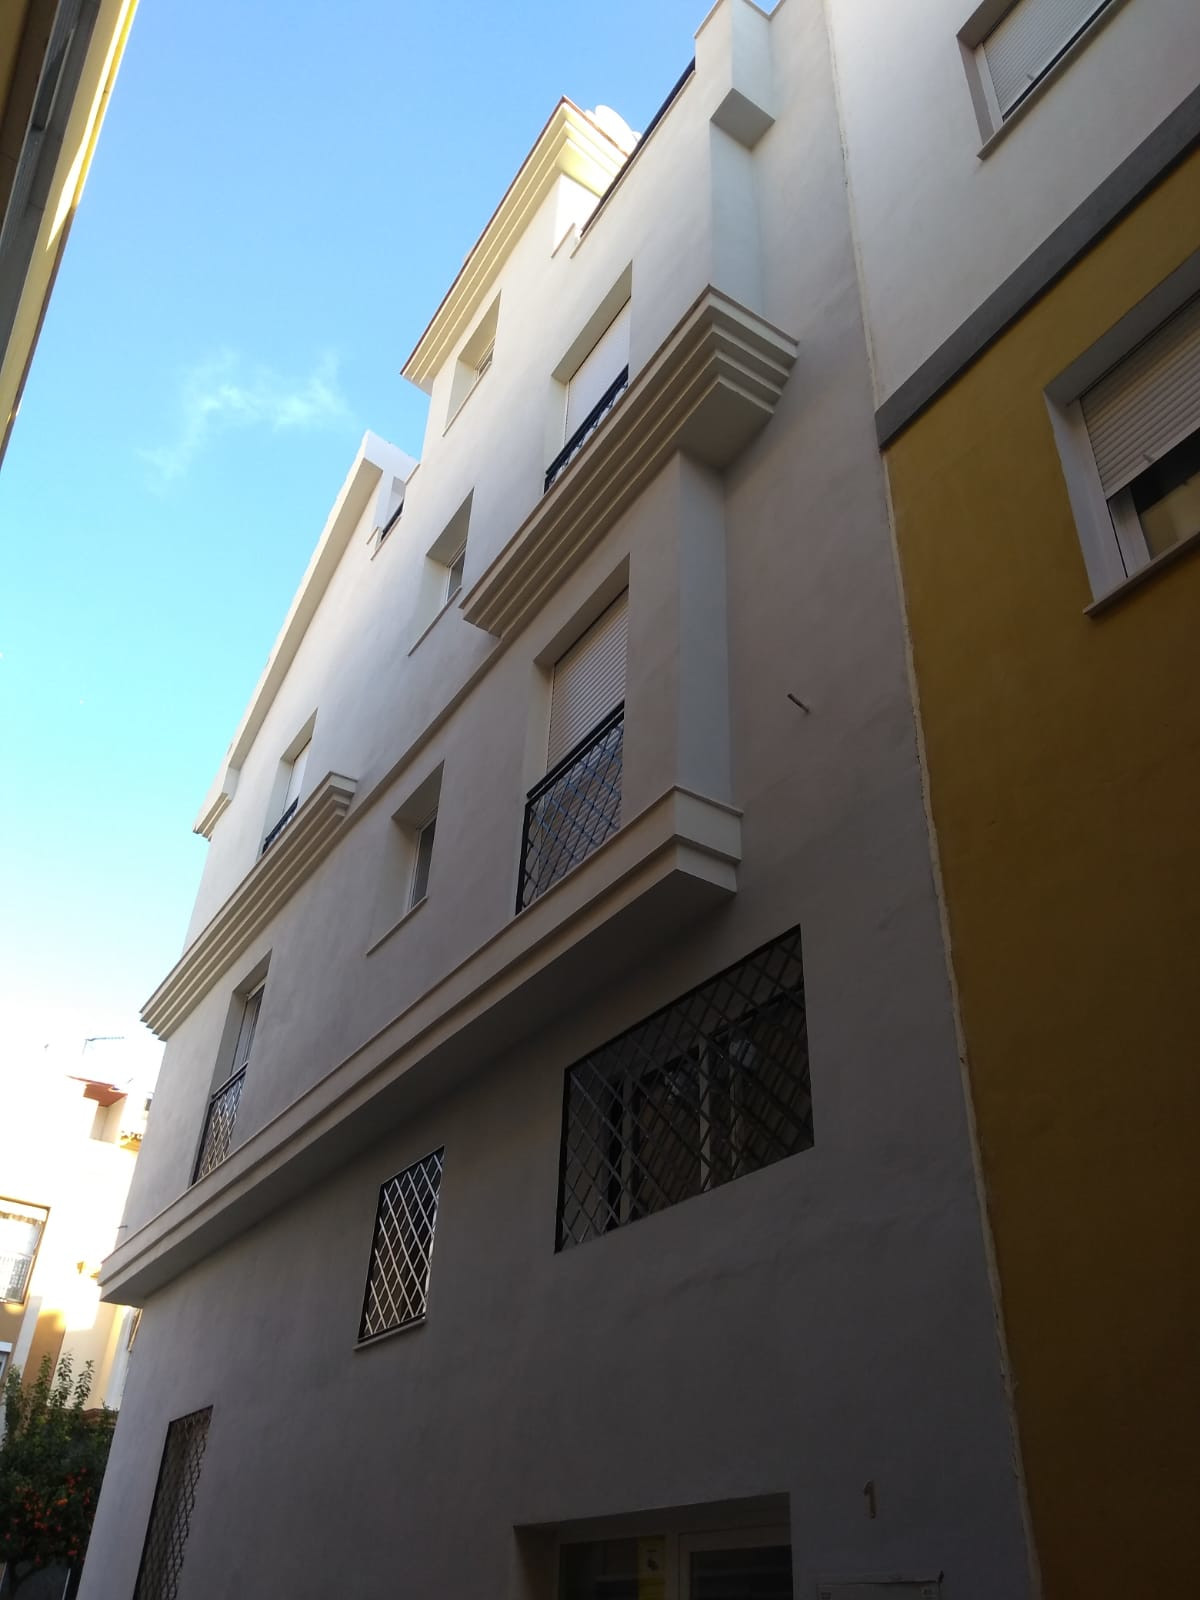 Building for sale of recent construction located in the area of Salesianos in Malaga. The building c,Spain